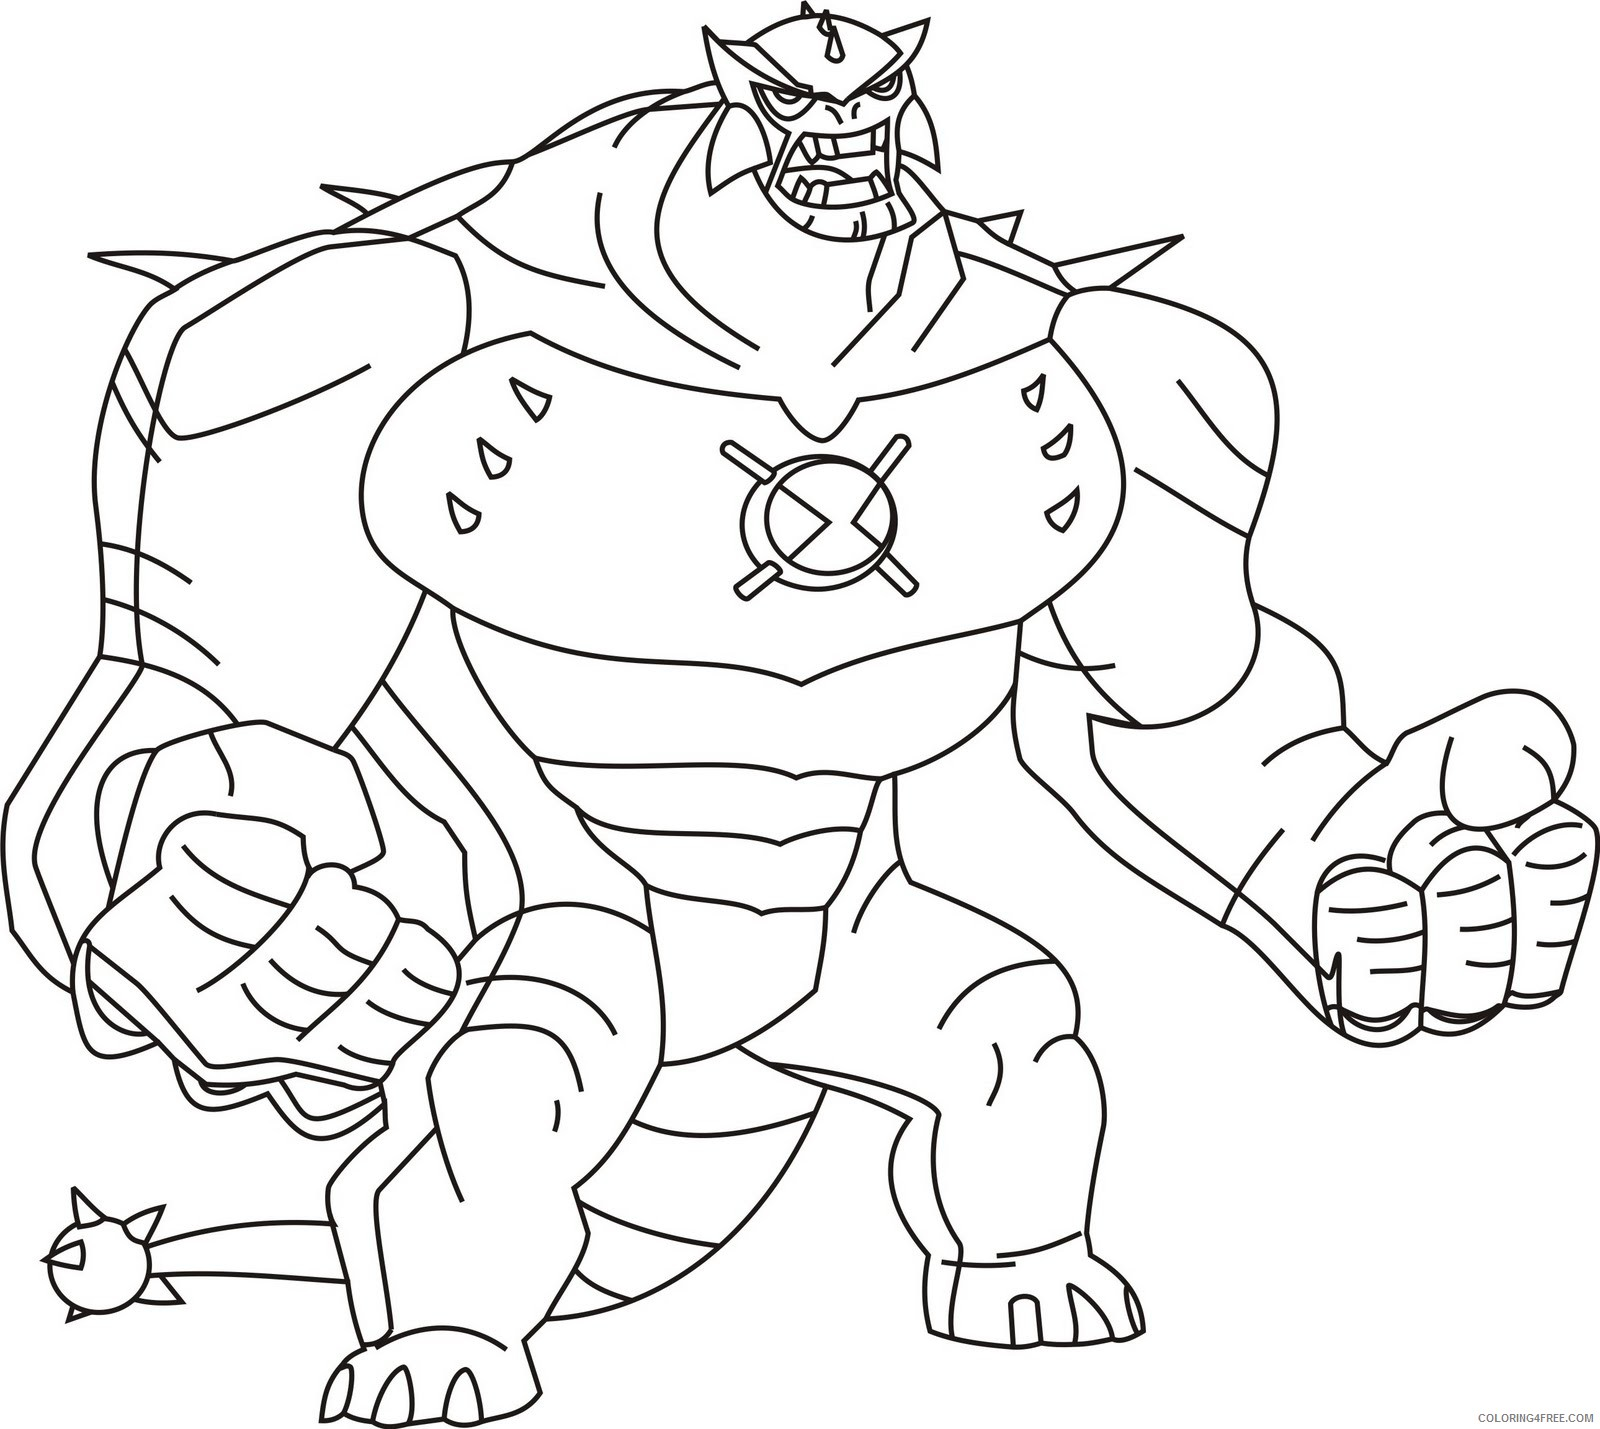 Ben 10 Aliens Way Big Coloring Page for Kids, Coloring Book - YouTube   1429x1600